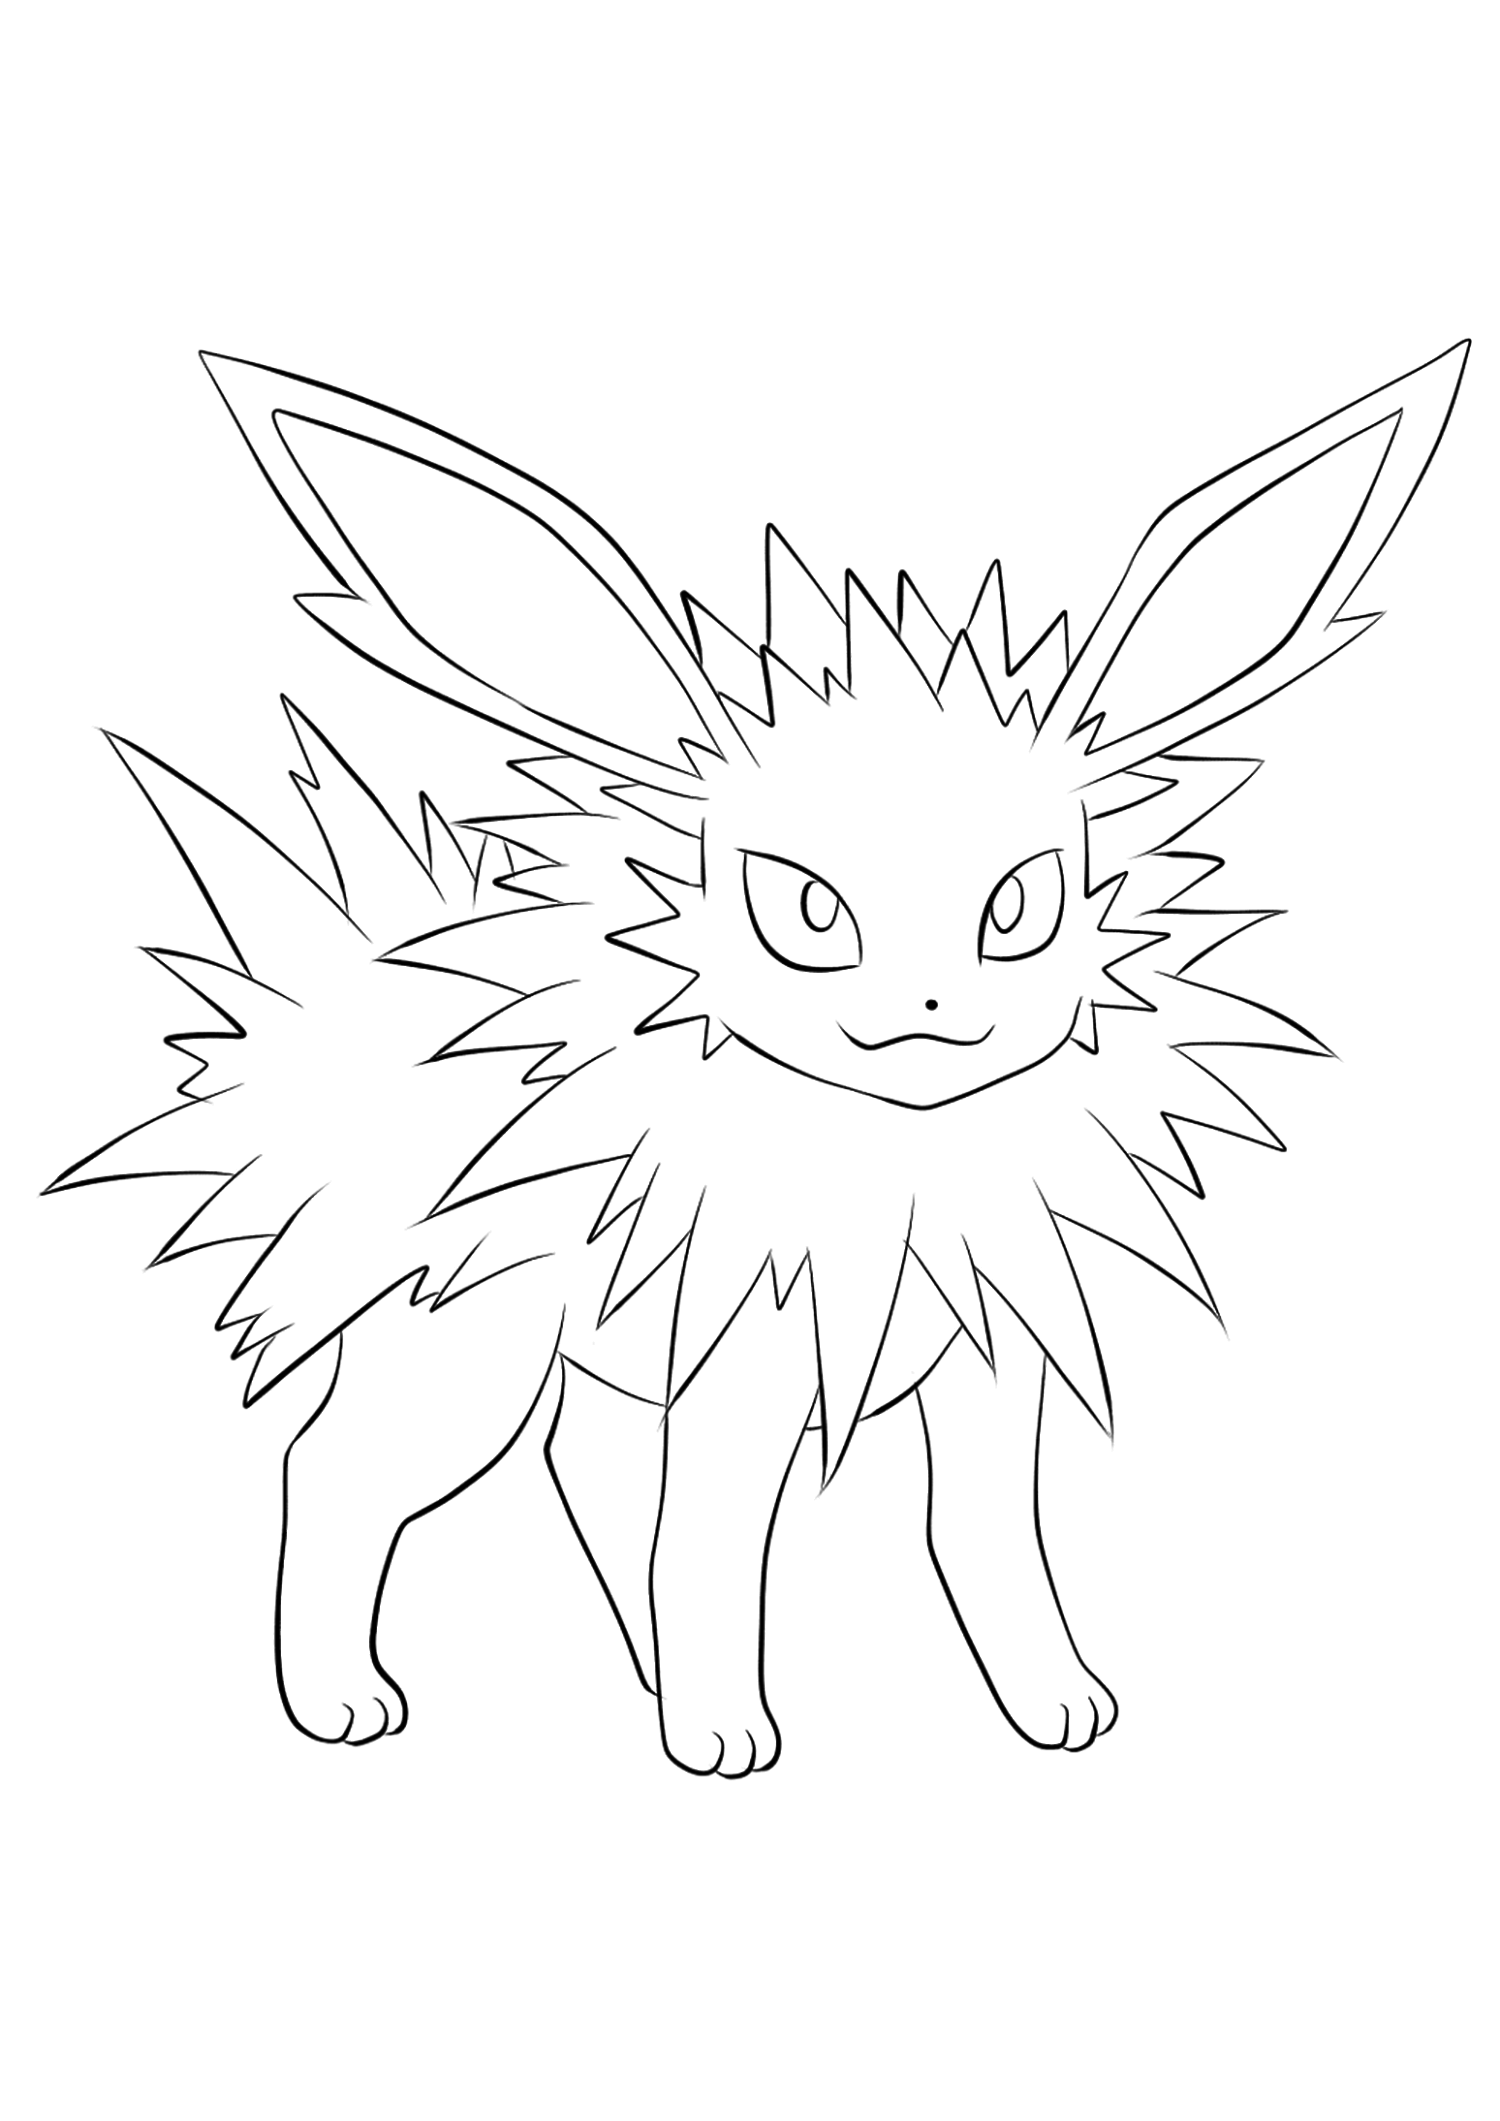 Pokemon Kleurplaten Vaporeon.Images Of Jolteon Coloring Pages Sabadaphnecottage